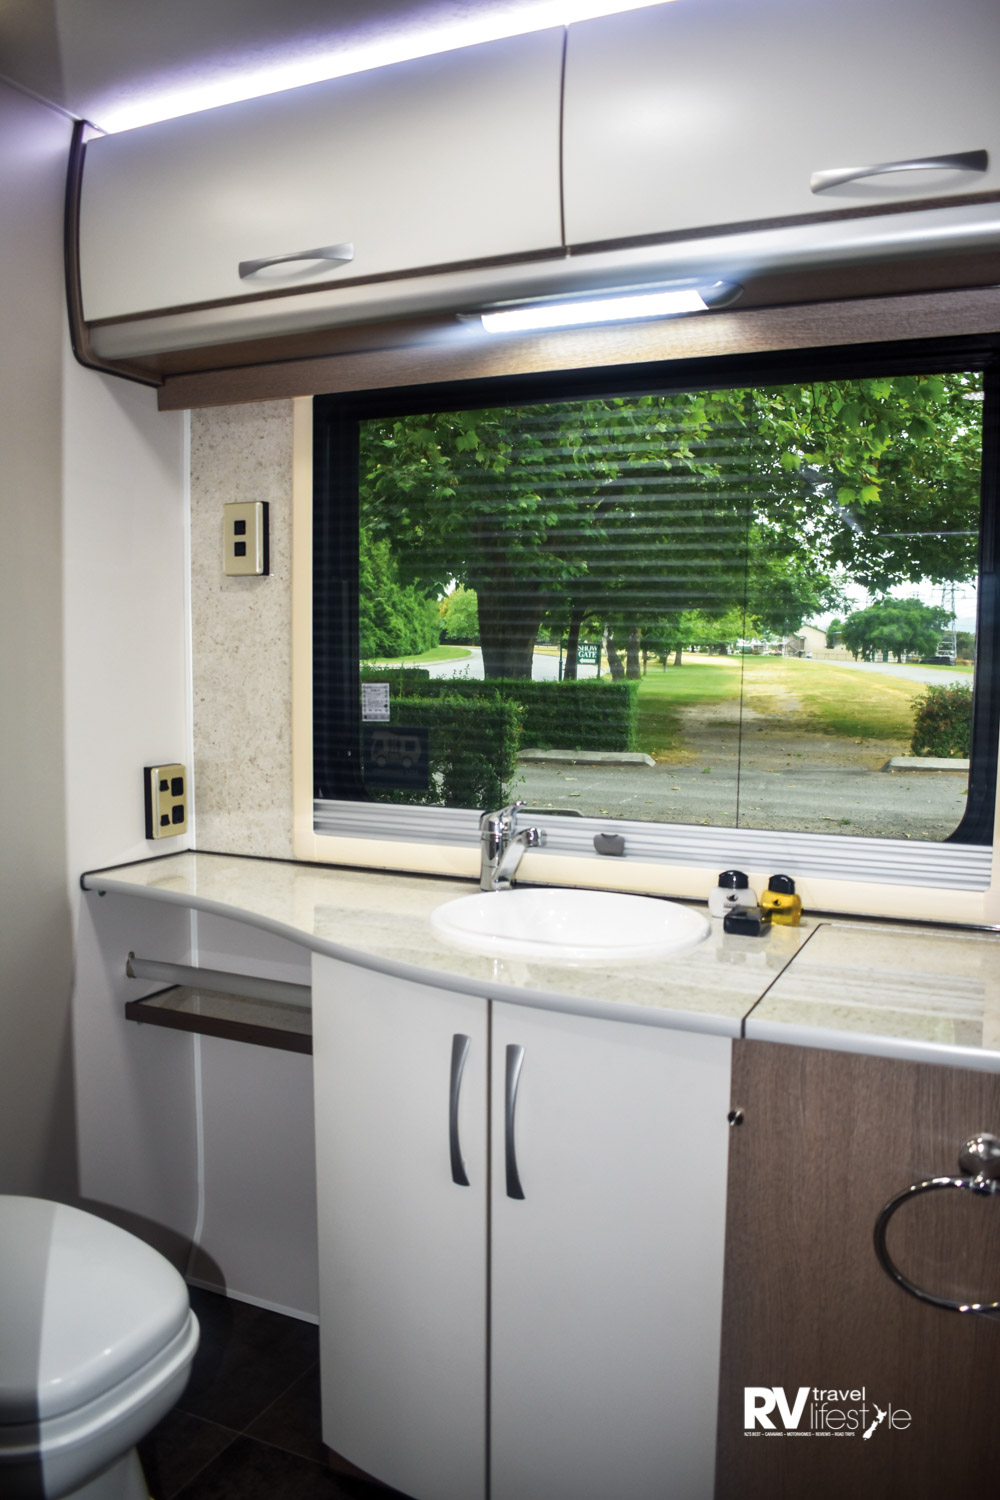 The galley is not only large and functional; it is also well lit and attractively designed